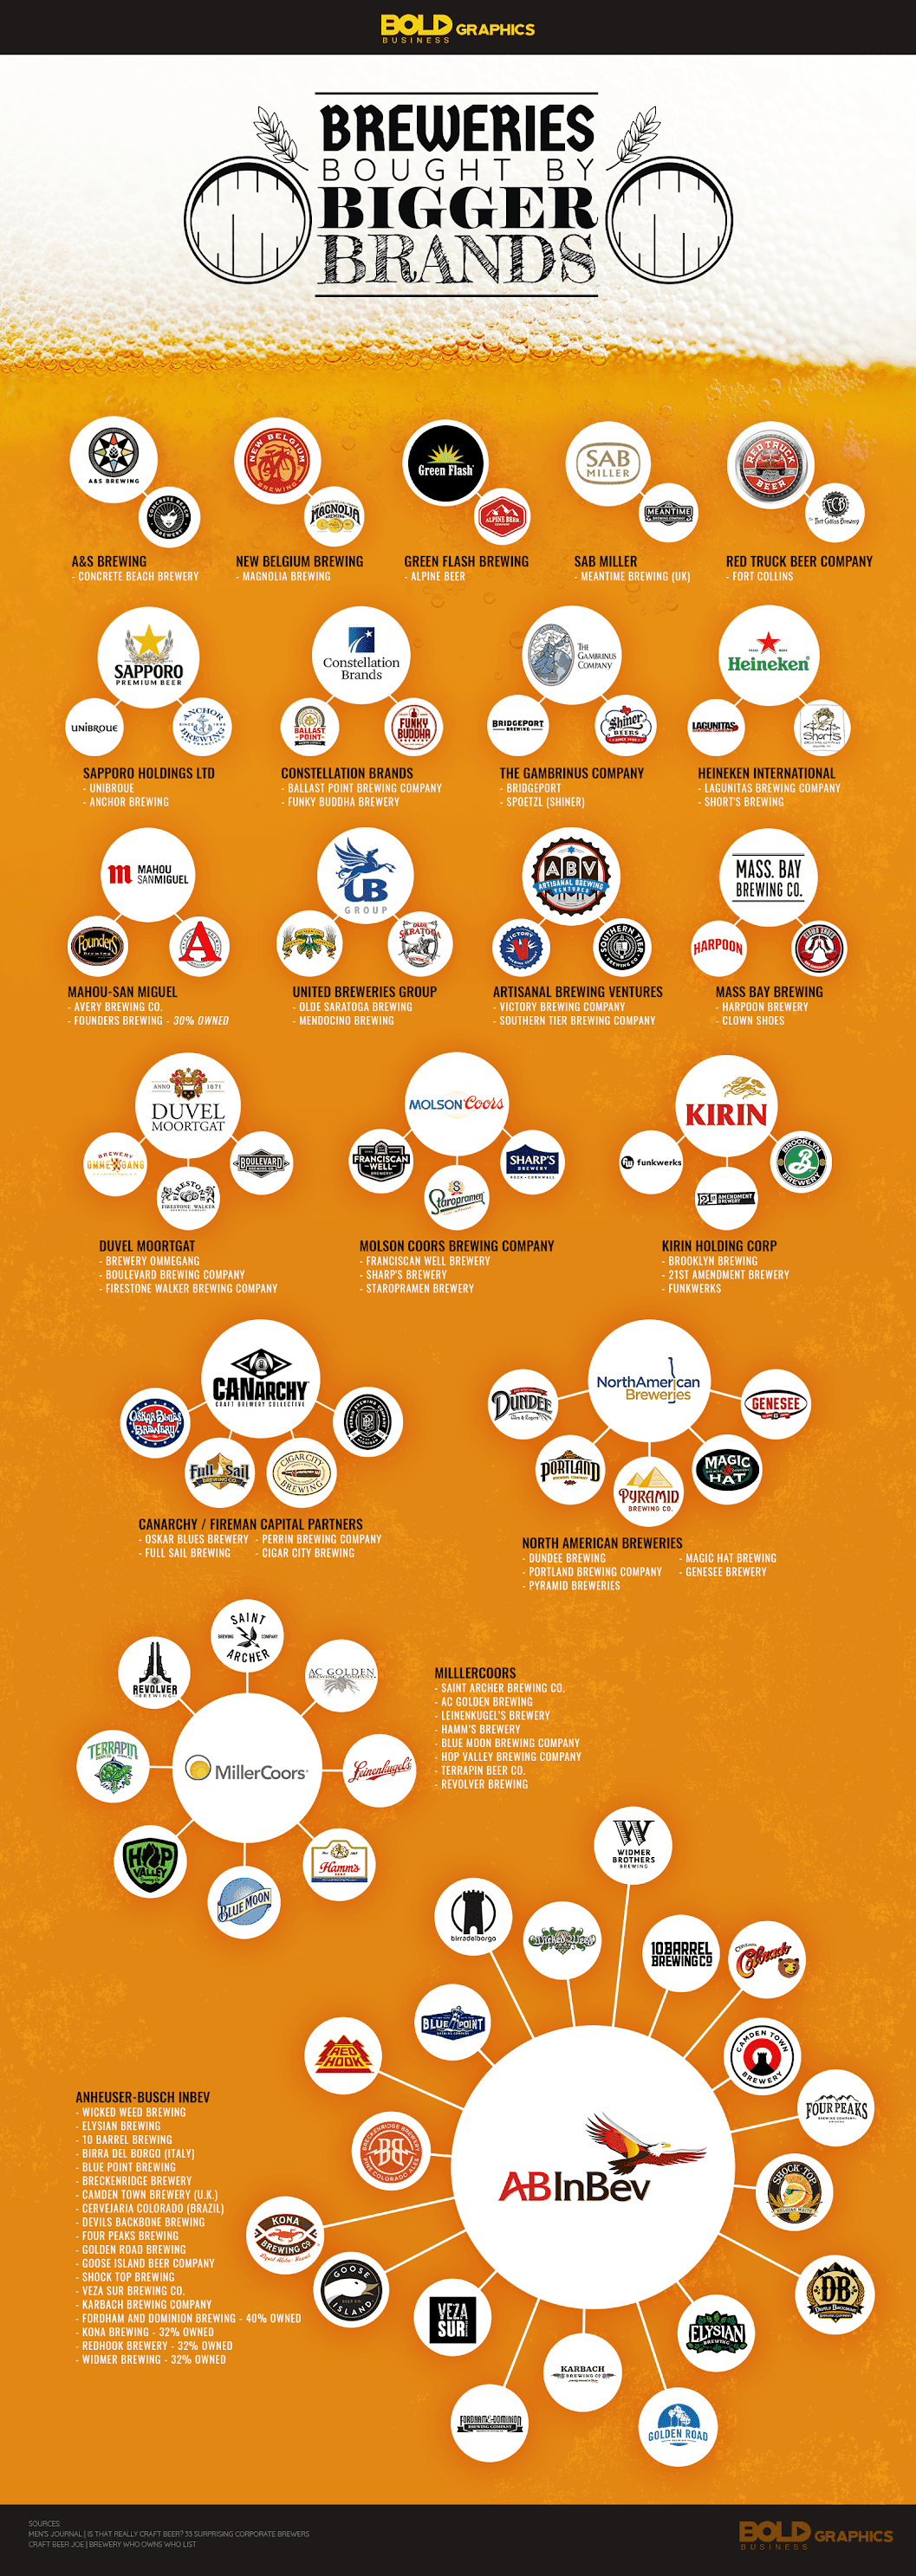 breweries bought by bigger brands infographic